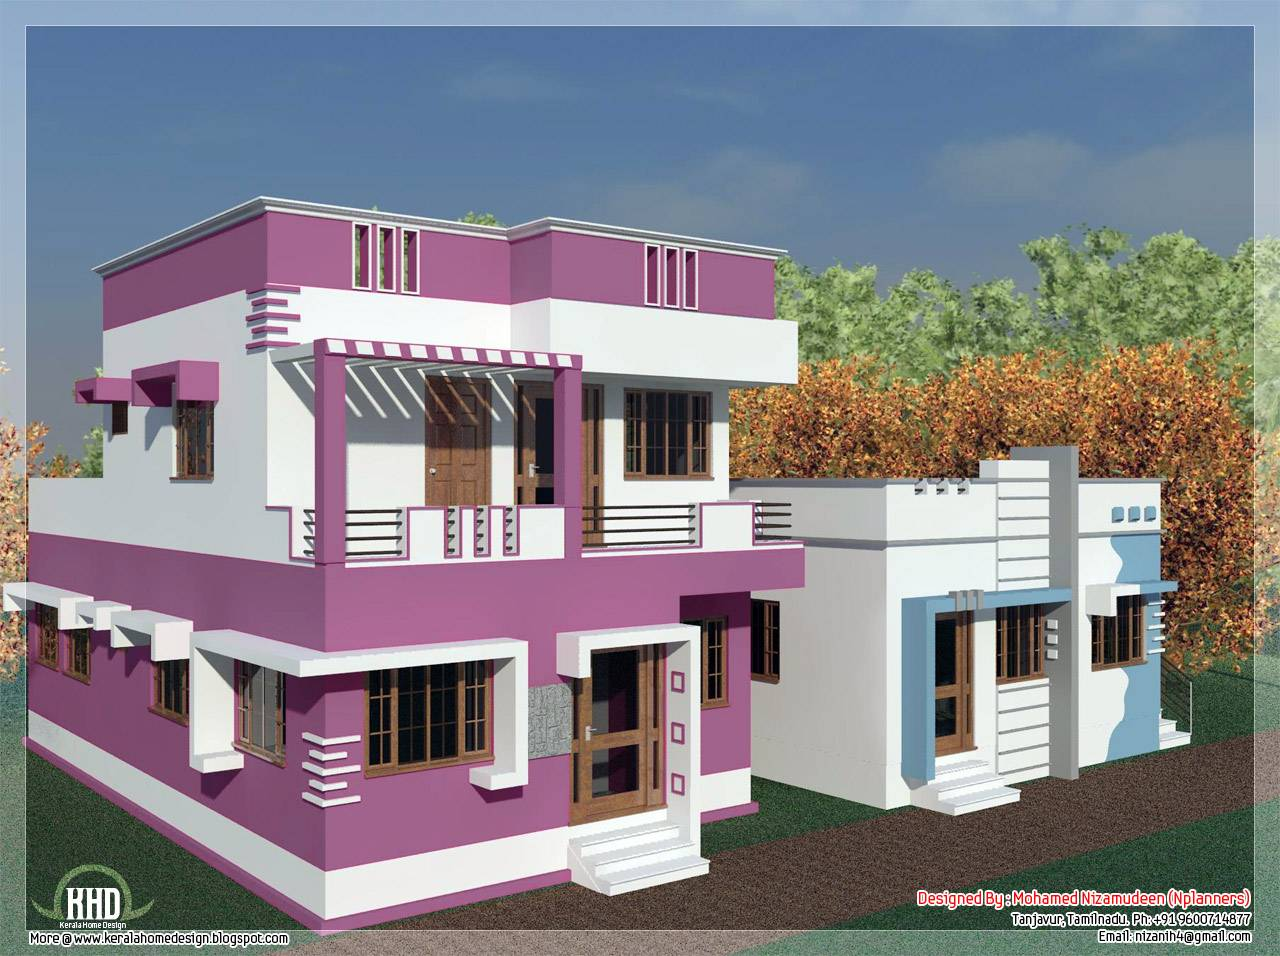 Home Design Tamilnadu - HomeRiview on home decorating, home development, home cleaning, home designer, home design, home planning, home production, home home, home learning, home graphics, home building, home animation, ad designing, home selling, home viewing, home photography, home modeling, home construction, home interior, home interiors, home training, home detailing, commercial designing, home decor,